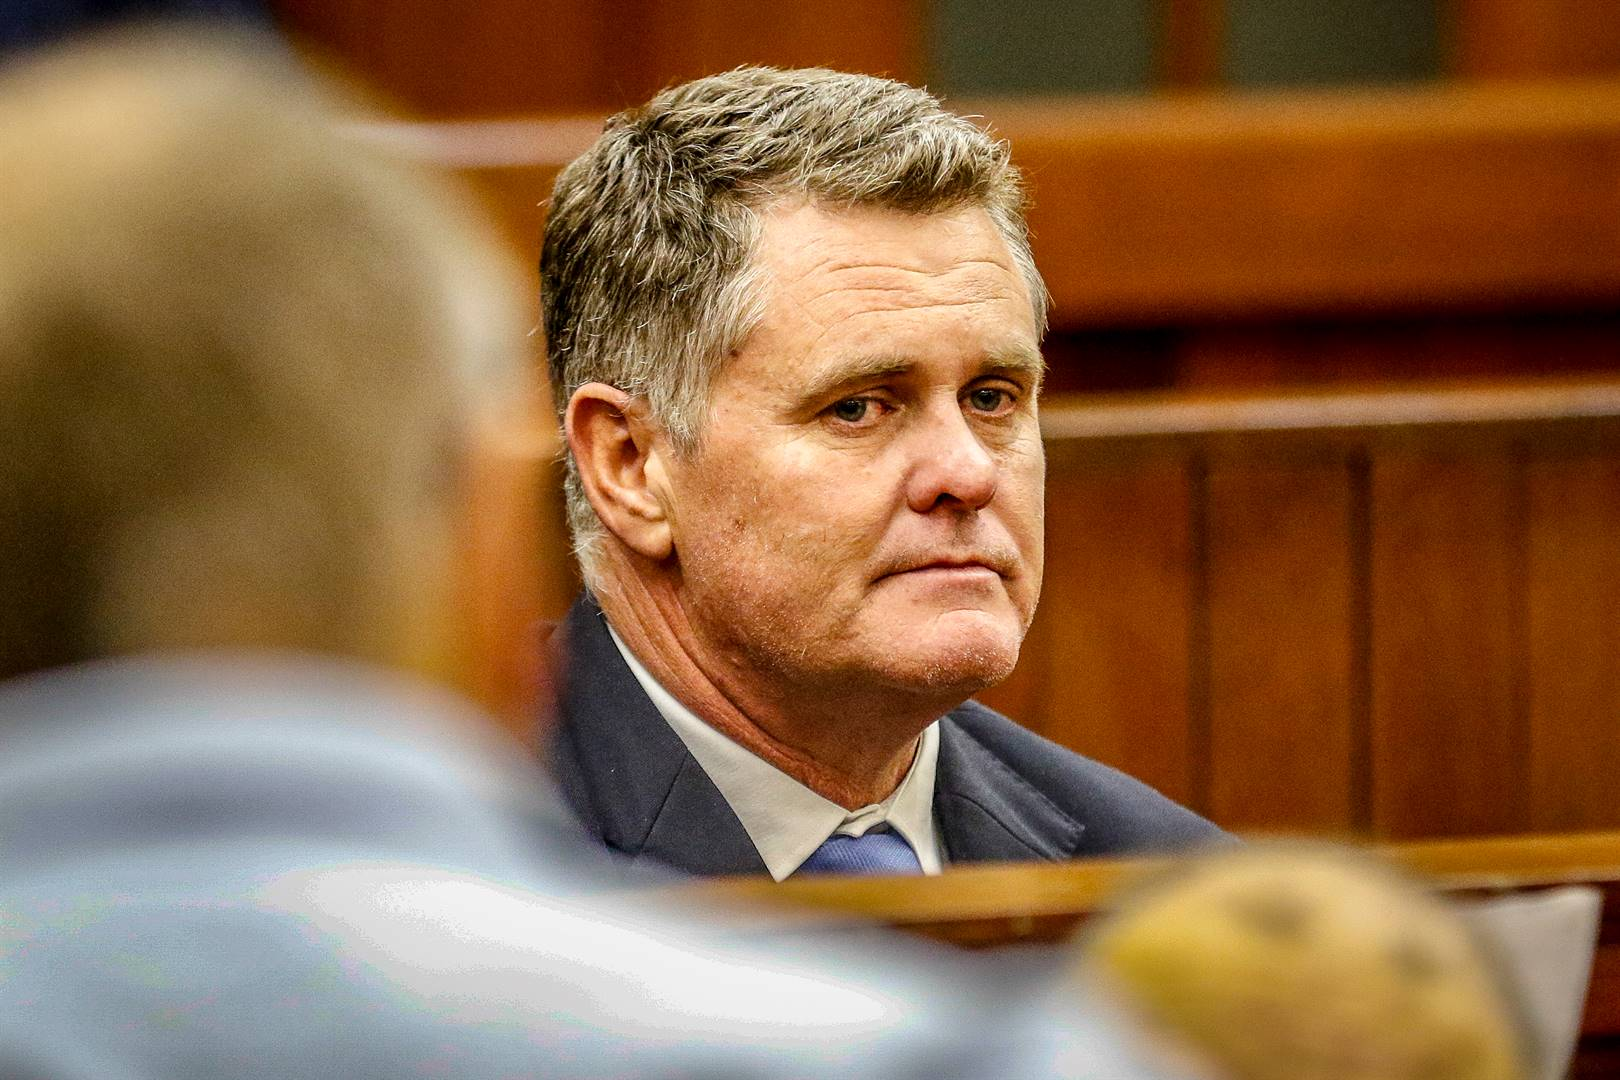 News24.com | SCA to hear Jason Rohde's appeal of bail refusal later this month